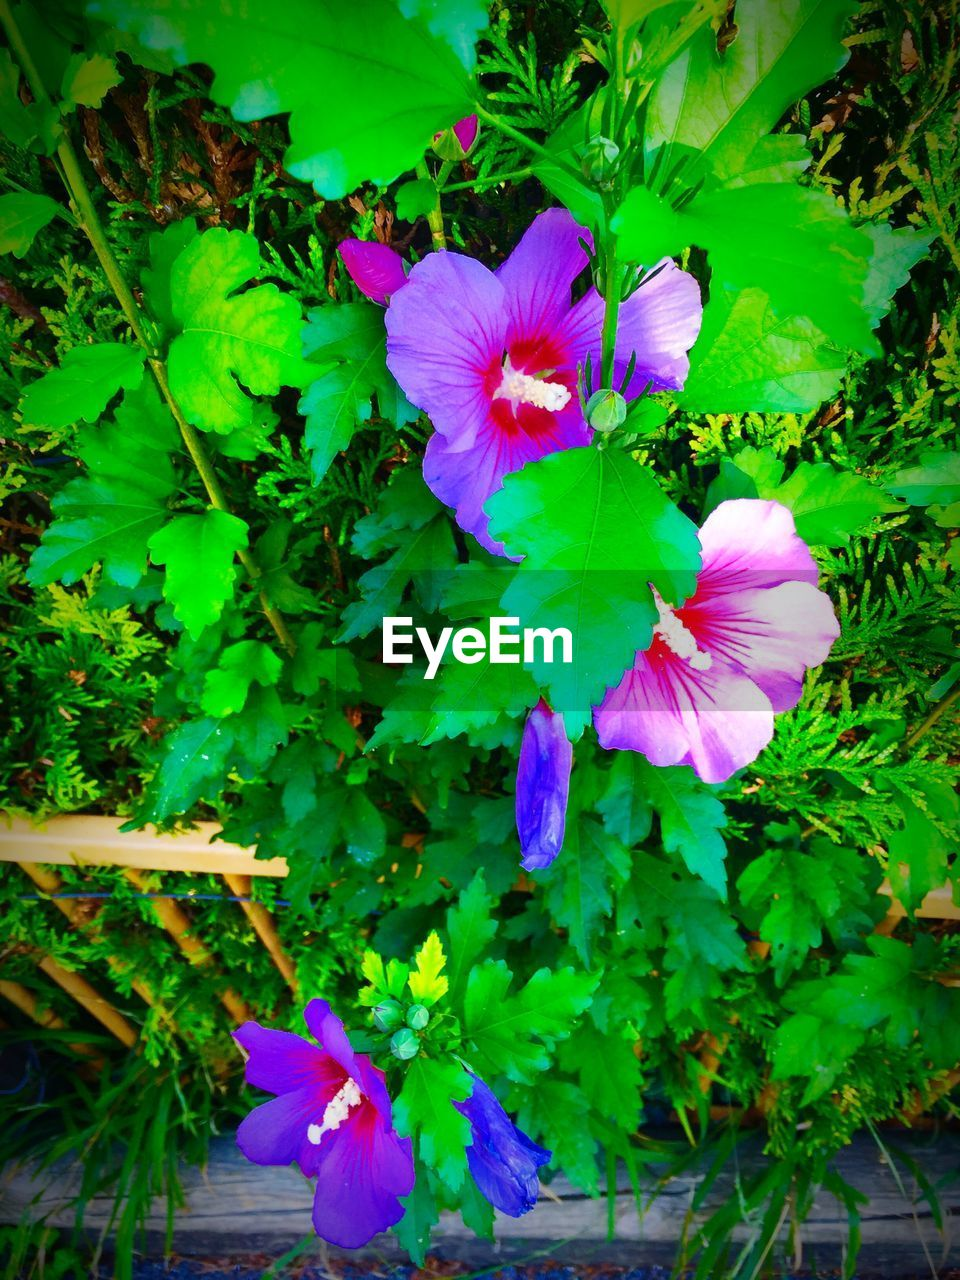 flower, growth, petal, fragility, nature, beauty in nature, plant, flower head, outdoors, green color, leaf, freshness, day, purple, no people, blooming, close-up, petunia